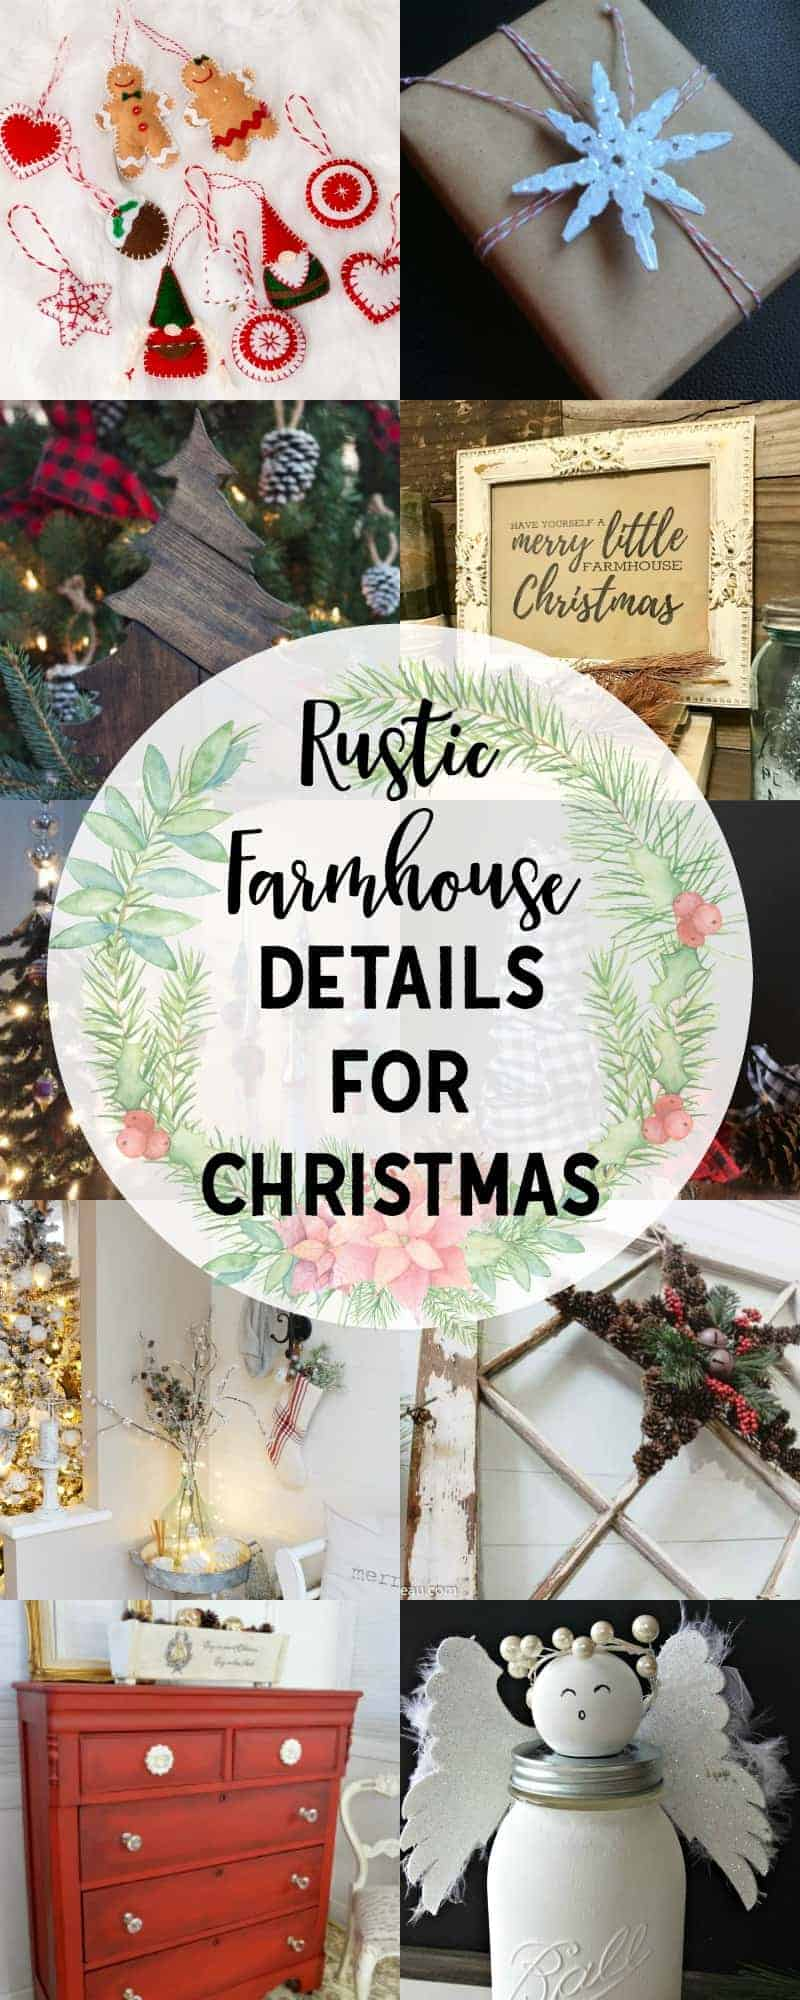 Rustic Farmhouse Details That are Perfect for Christmas!